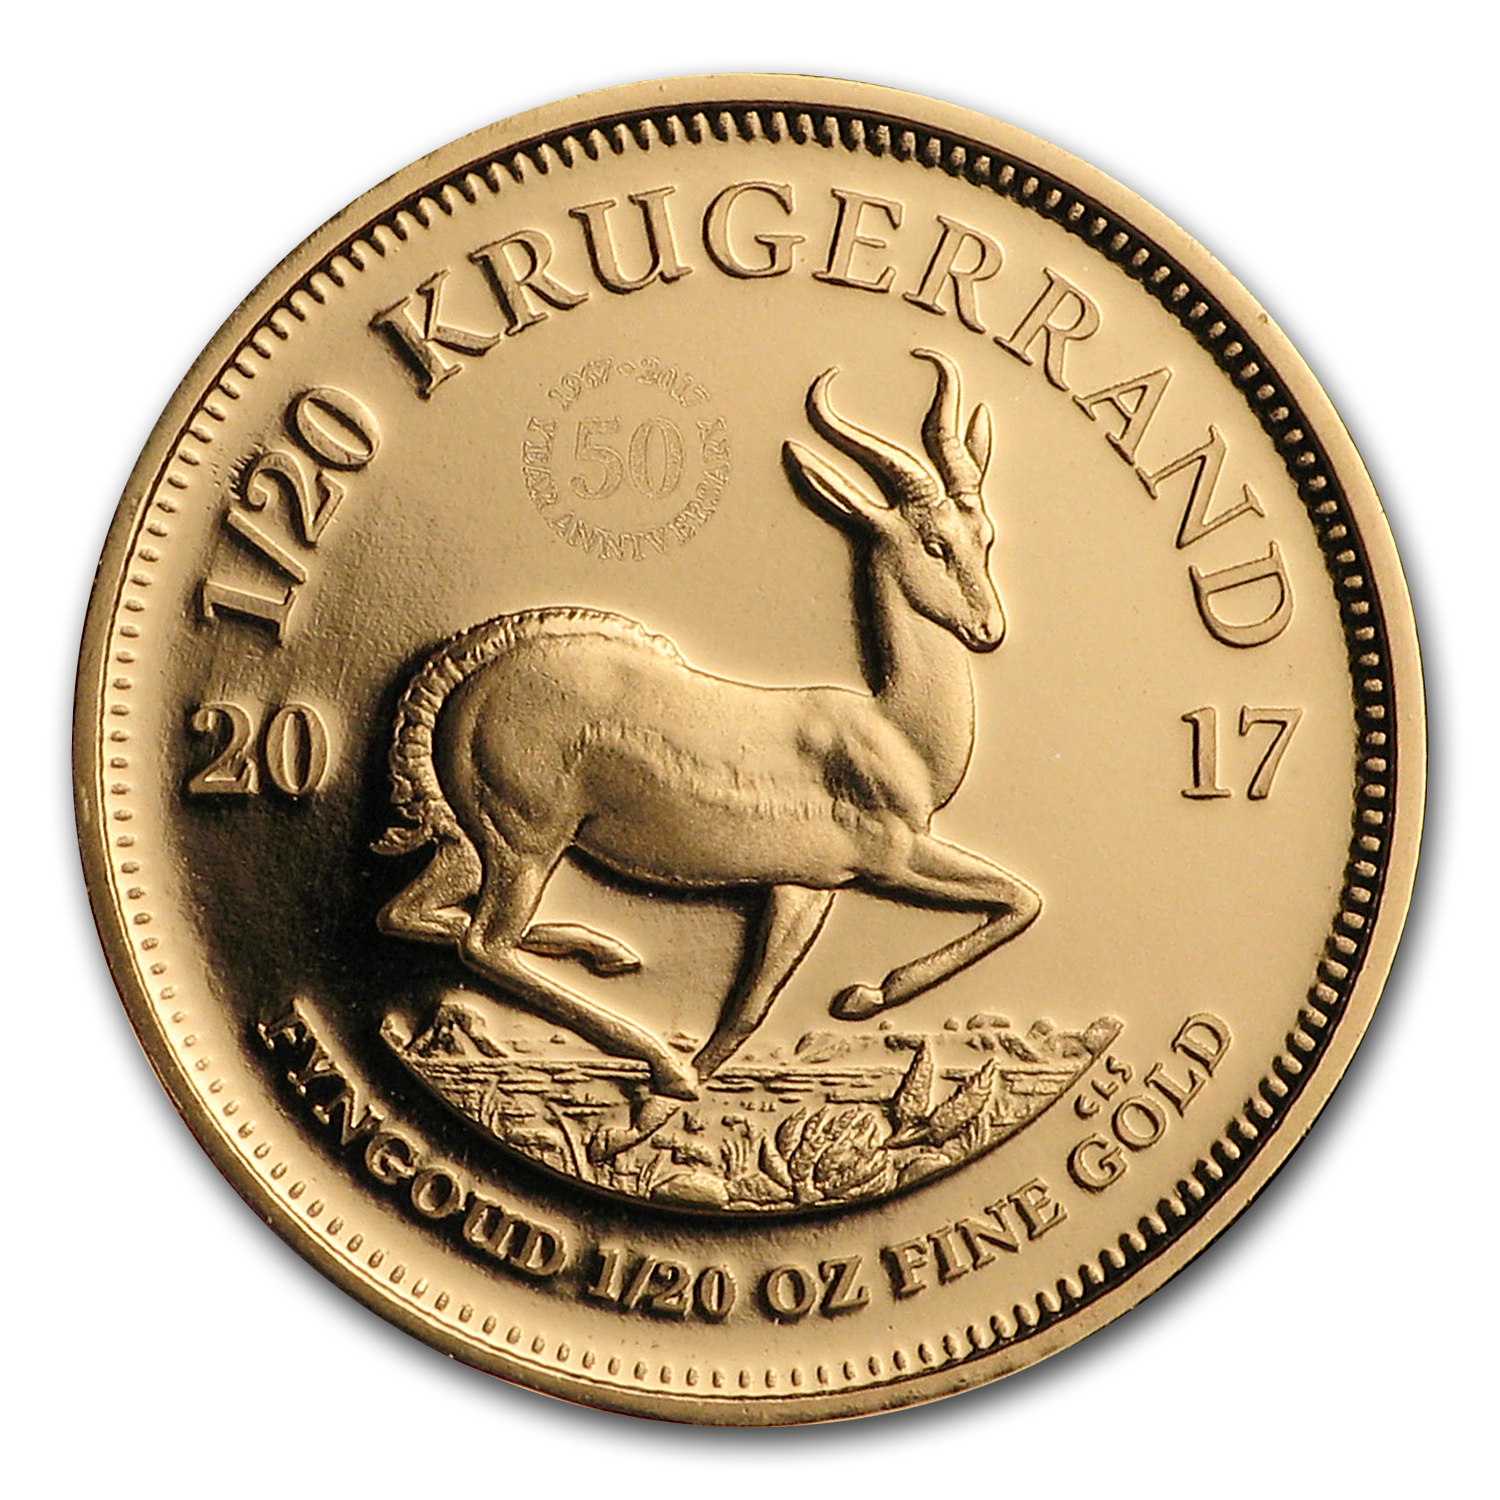 2017 South Africa 1/20 oz Proof Gold Krugerrand